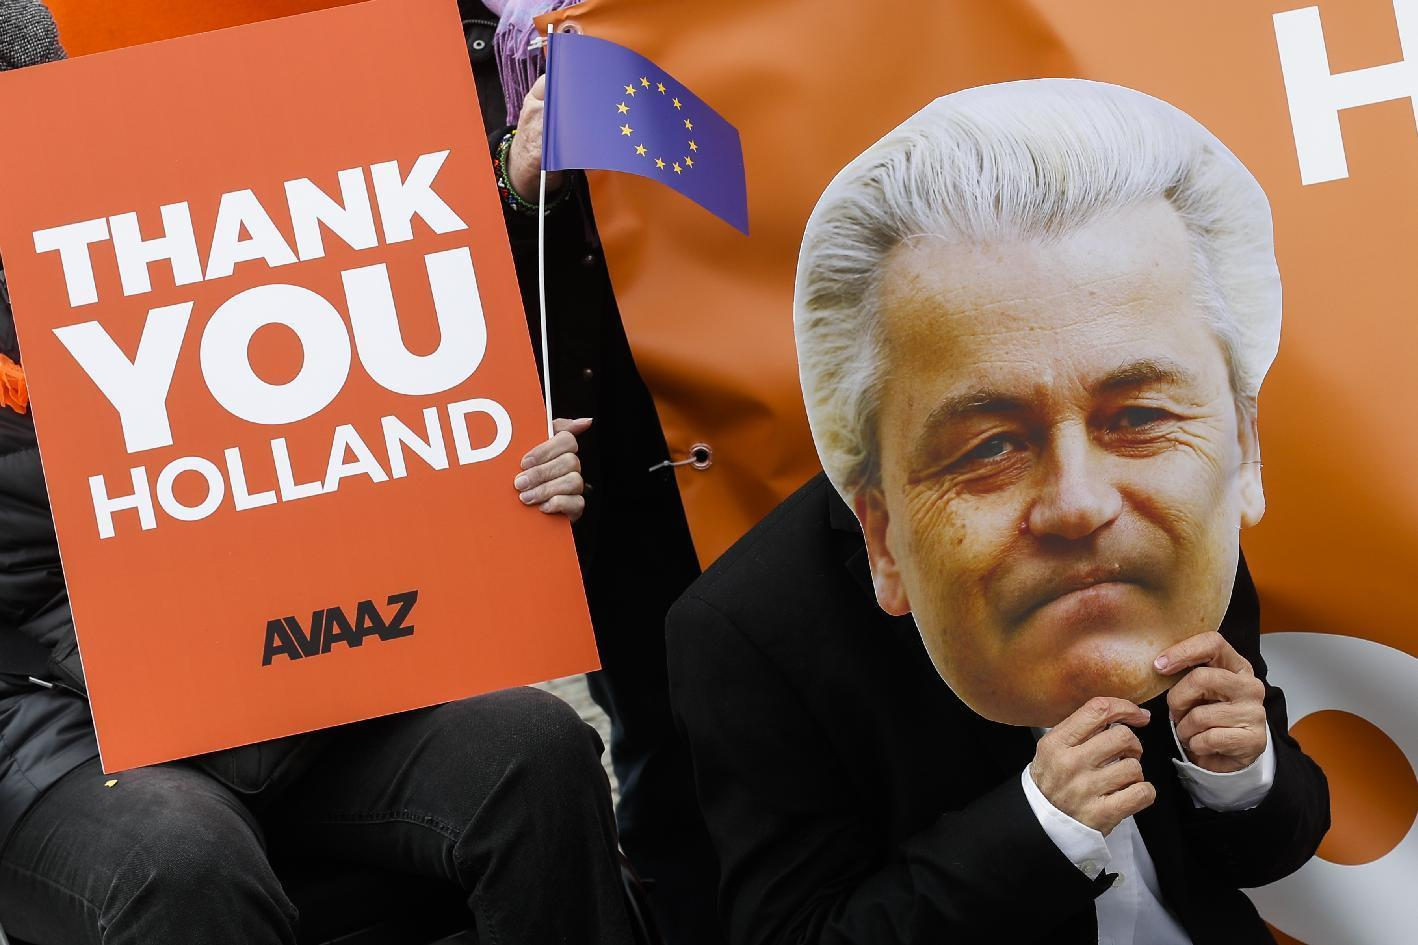 An activist of the AVAAZ network with a mask of Dutch anti-Islam lawmaker Geert Wilders attends an event to celebrate the election results in the Netherlands in front of the Brandenburg Gate in Berlin, Thursday, March 16, 2017. (AP Photo/Markus Schreiber)